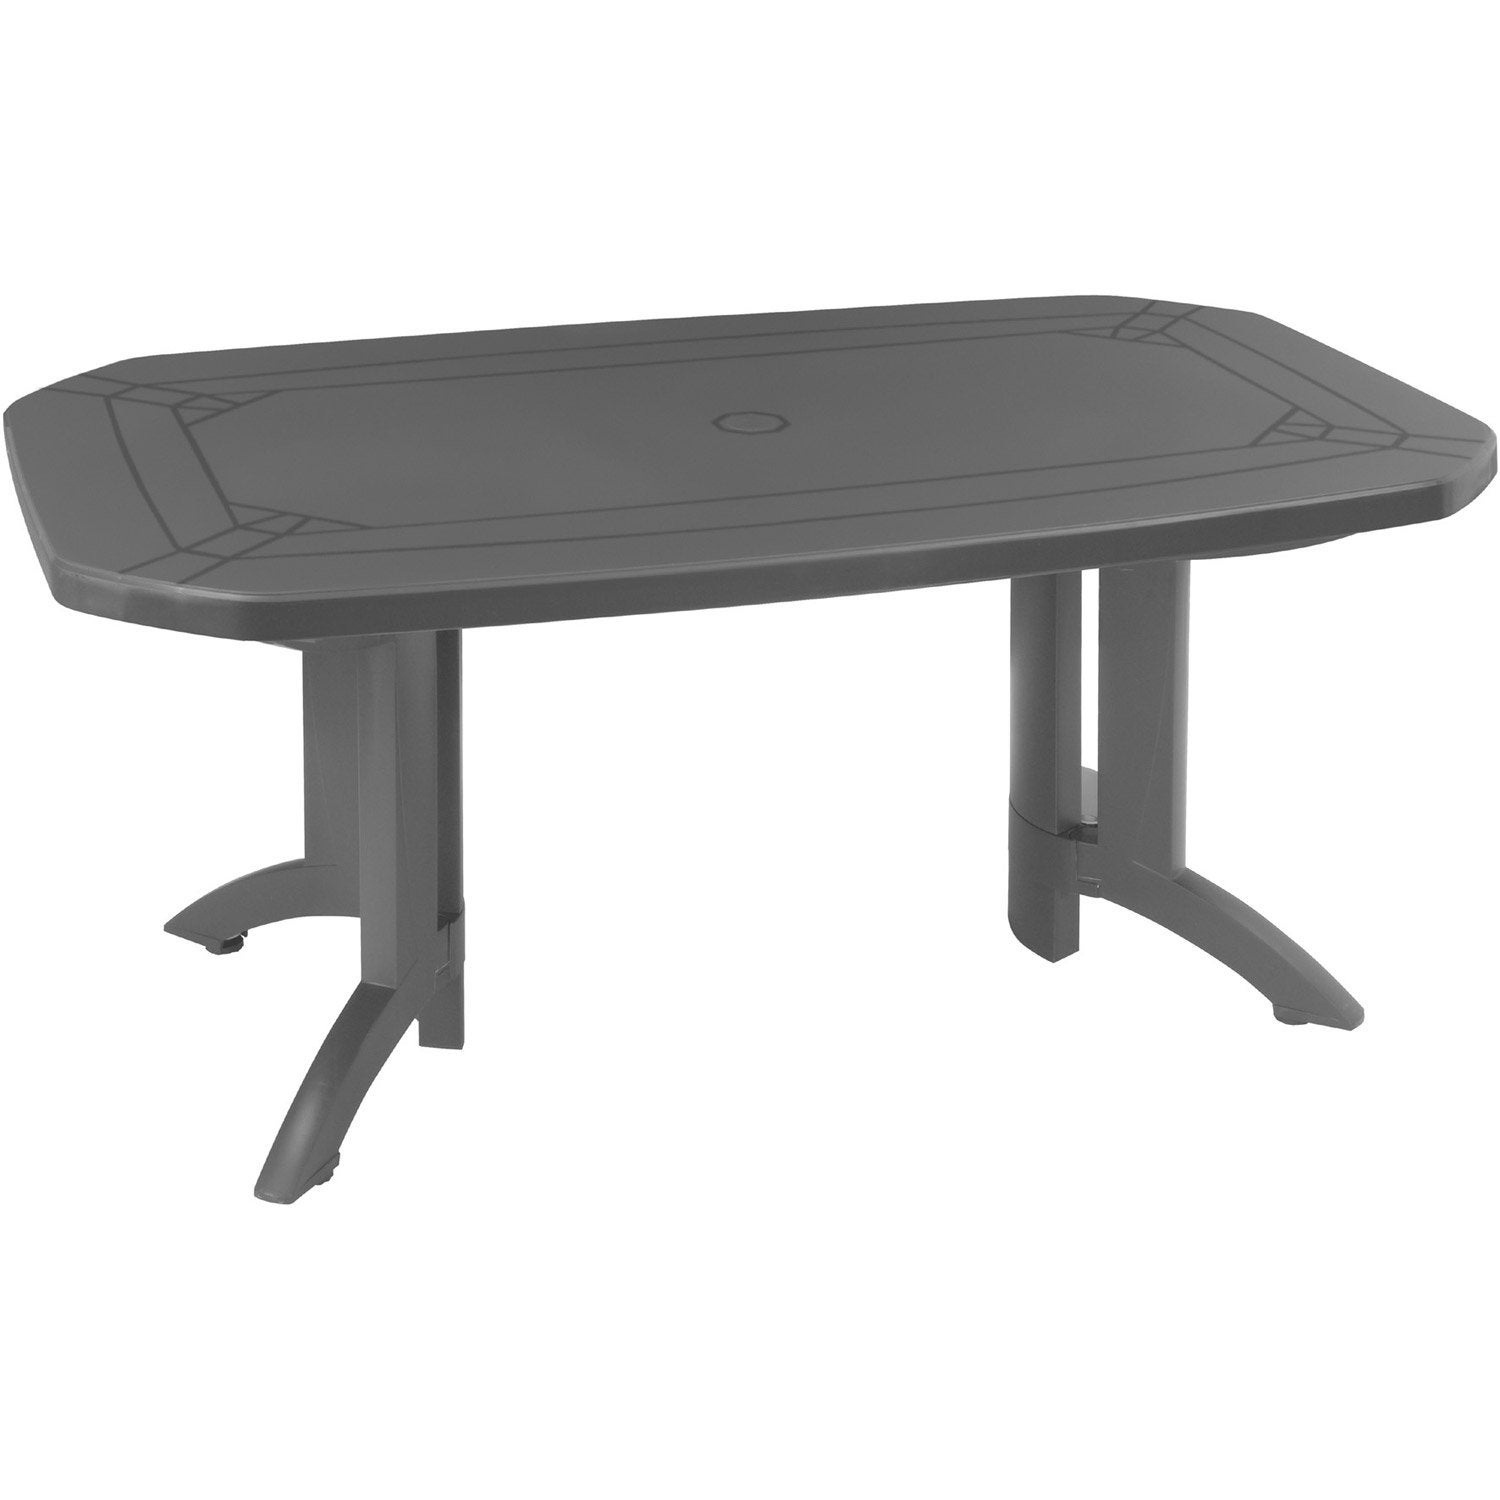 Table De Jardin Grosfillex V Ga Rectangulaire Anthracite 6